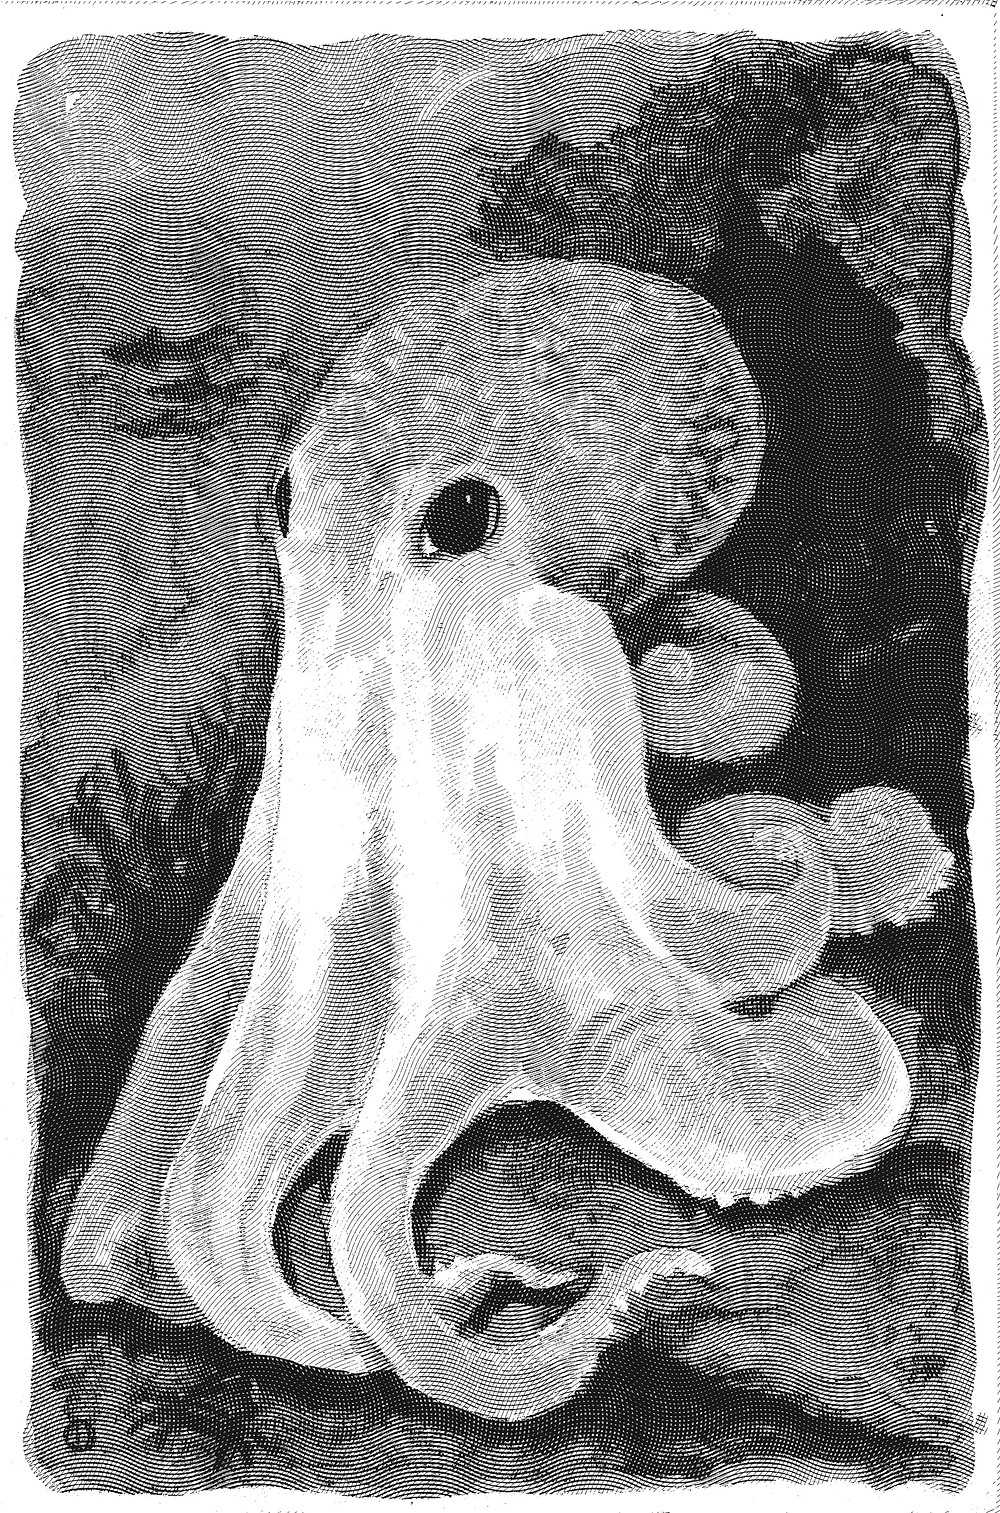 Engraved Octopus Illustration by Idelle Fisher -  Engraving effect created by Photoshop Actions